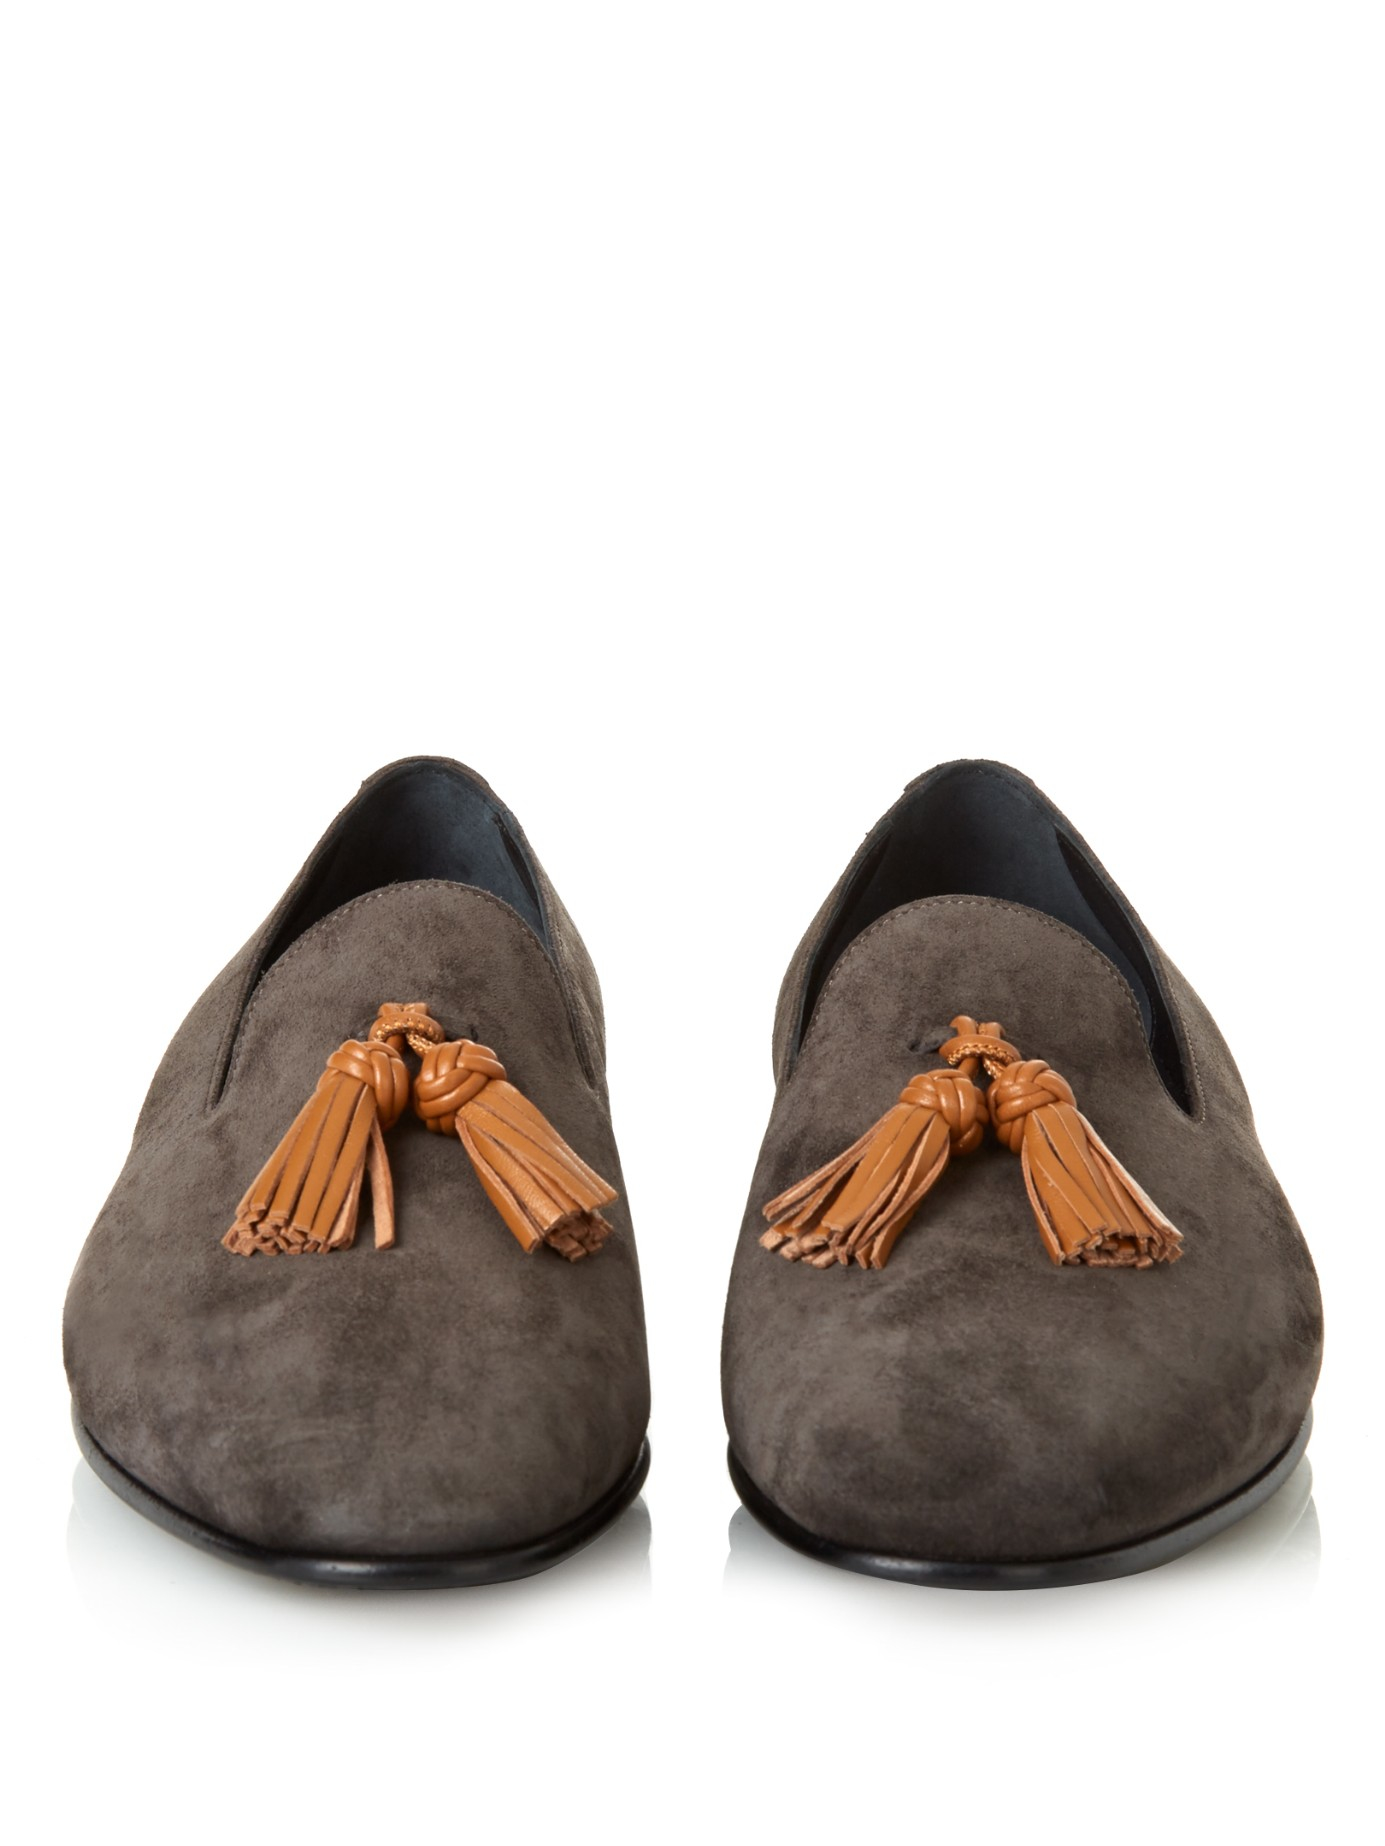 John Lobb Shoes >> Lyst - Burberry Prorsum Lewis Suede Loafers in Gray for Men